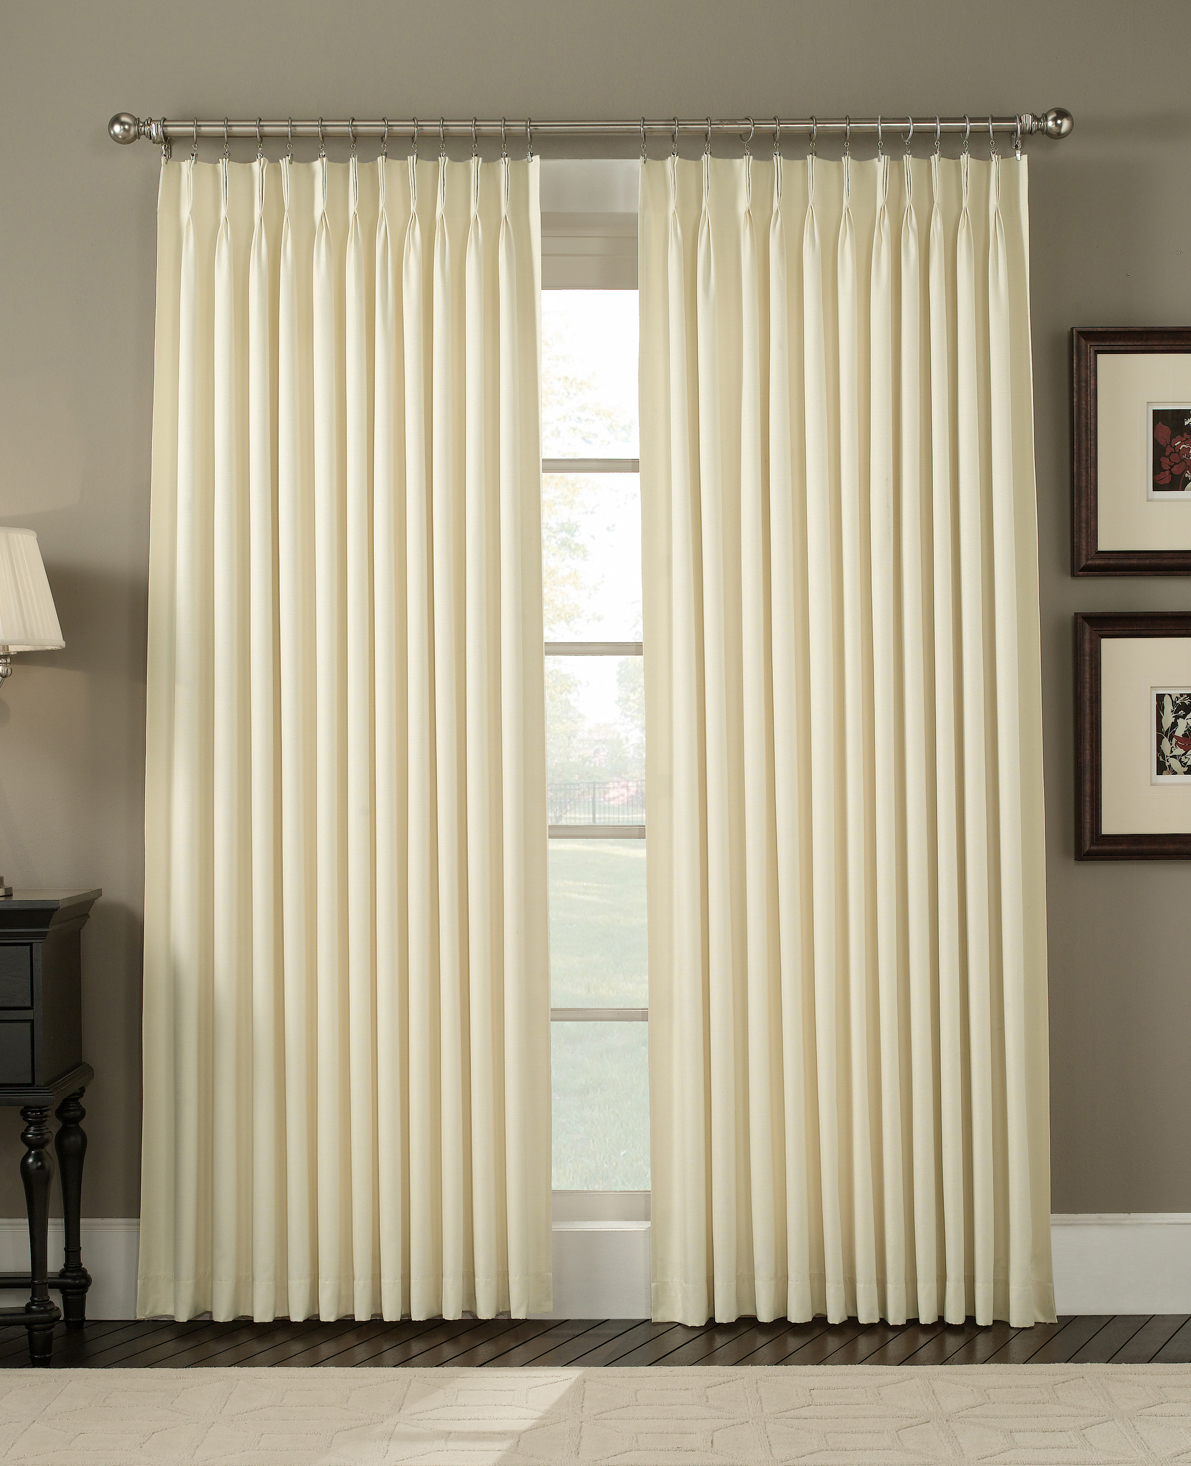 Window Drapes | Arch Window Drapes | Drapes for Bay Window